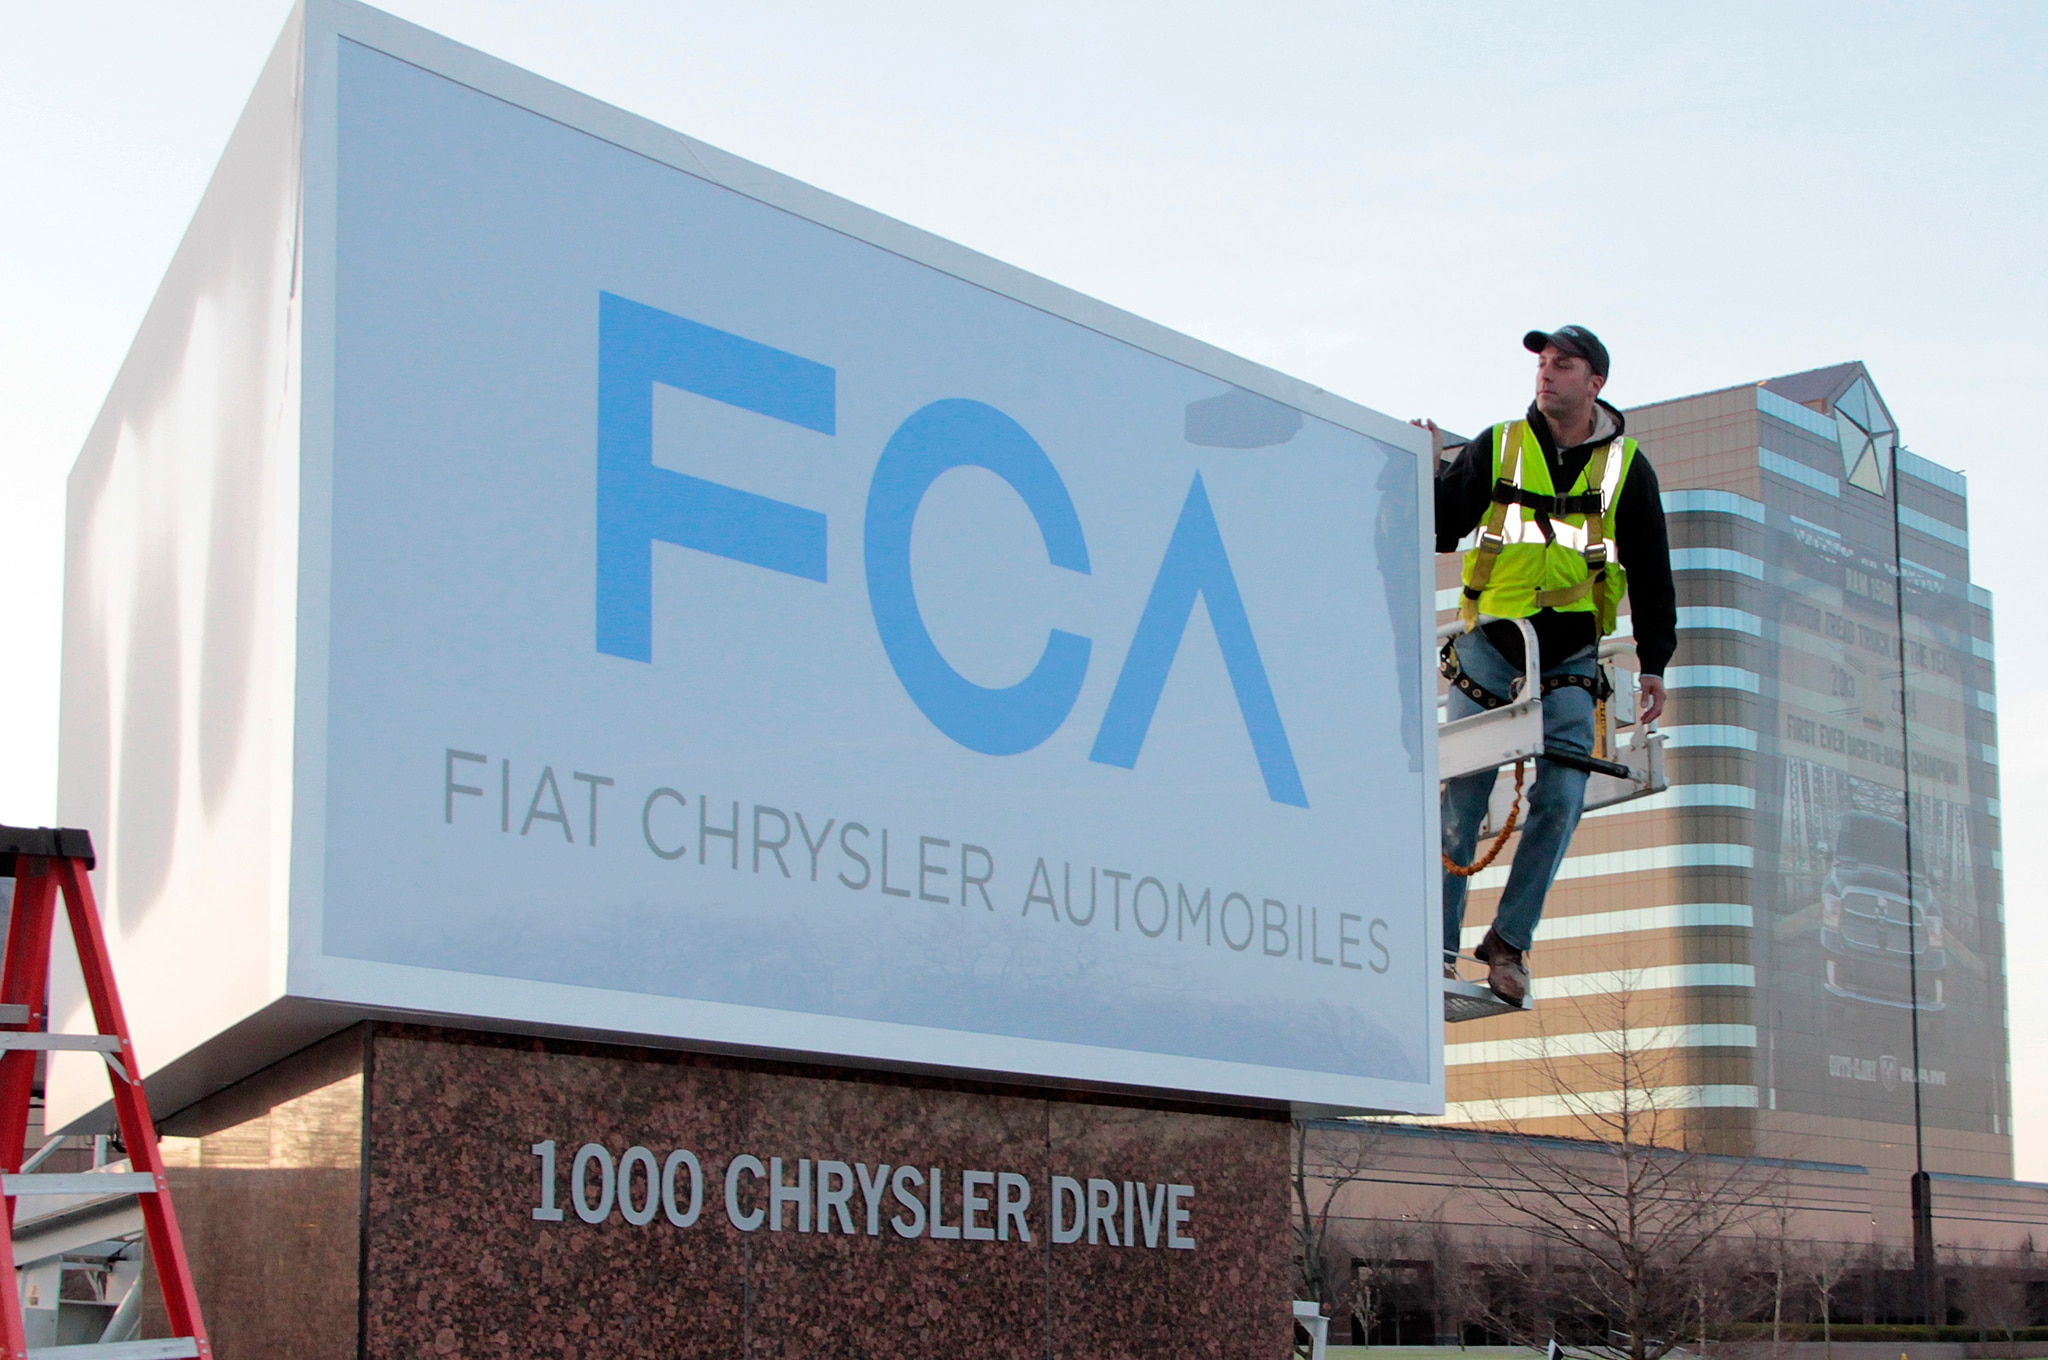 Fiat Chrysler Automobiles New Sign Construction 43